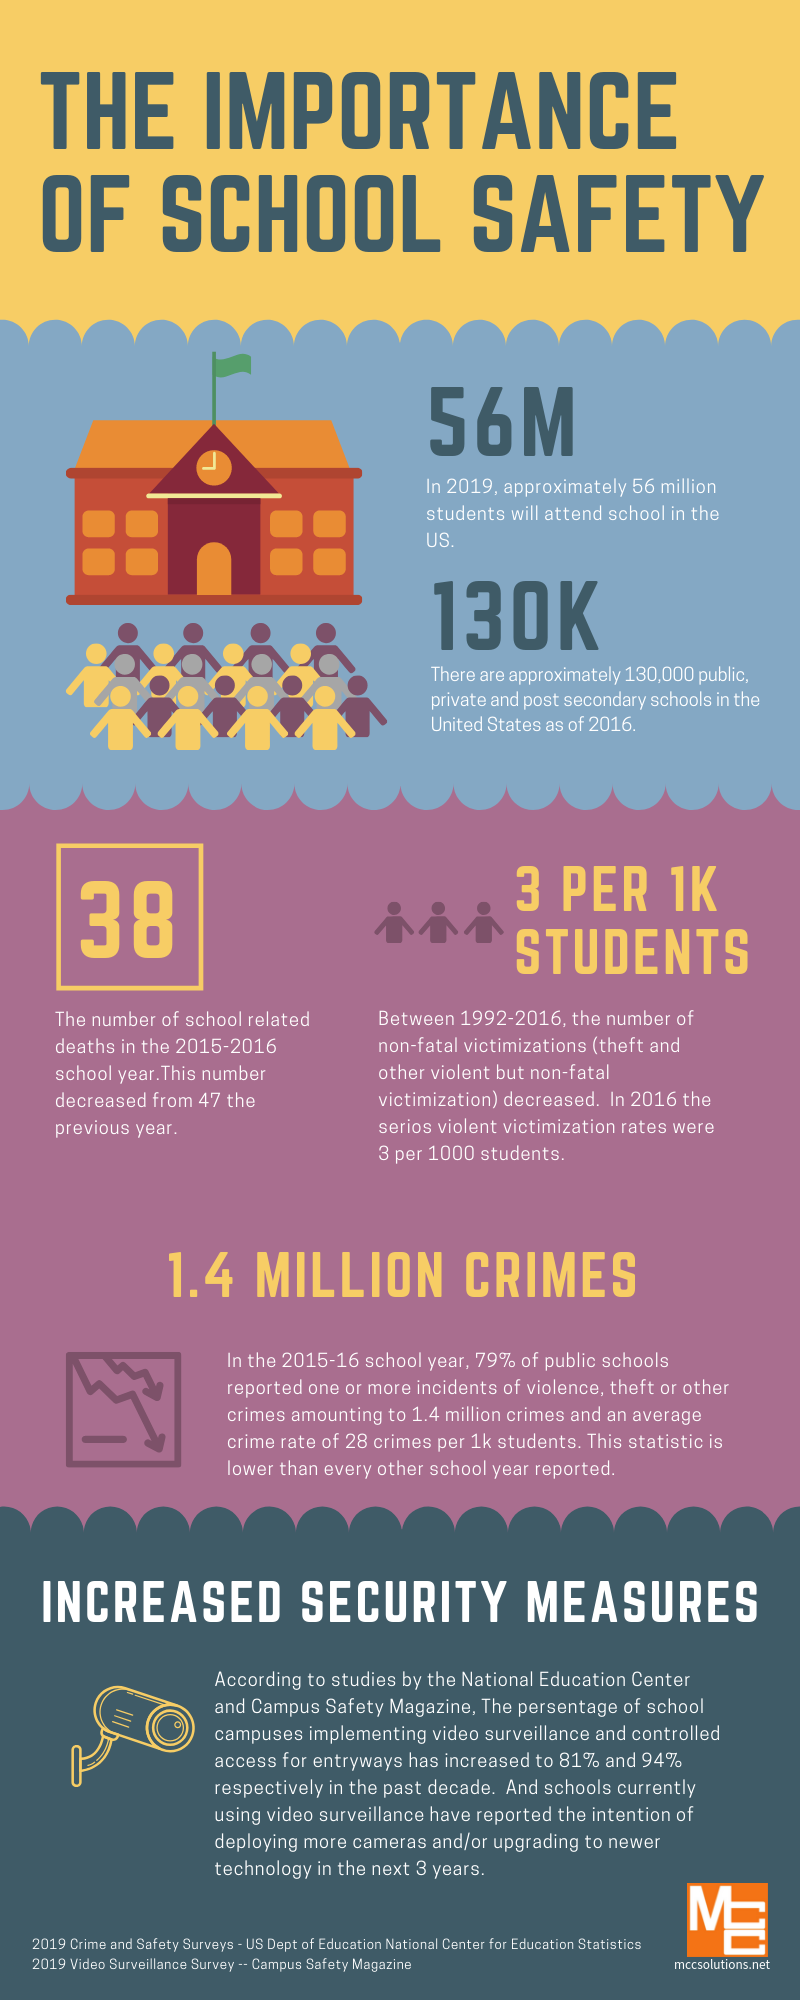 The Importance of School Safety Infographic from MCC